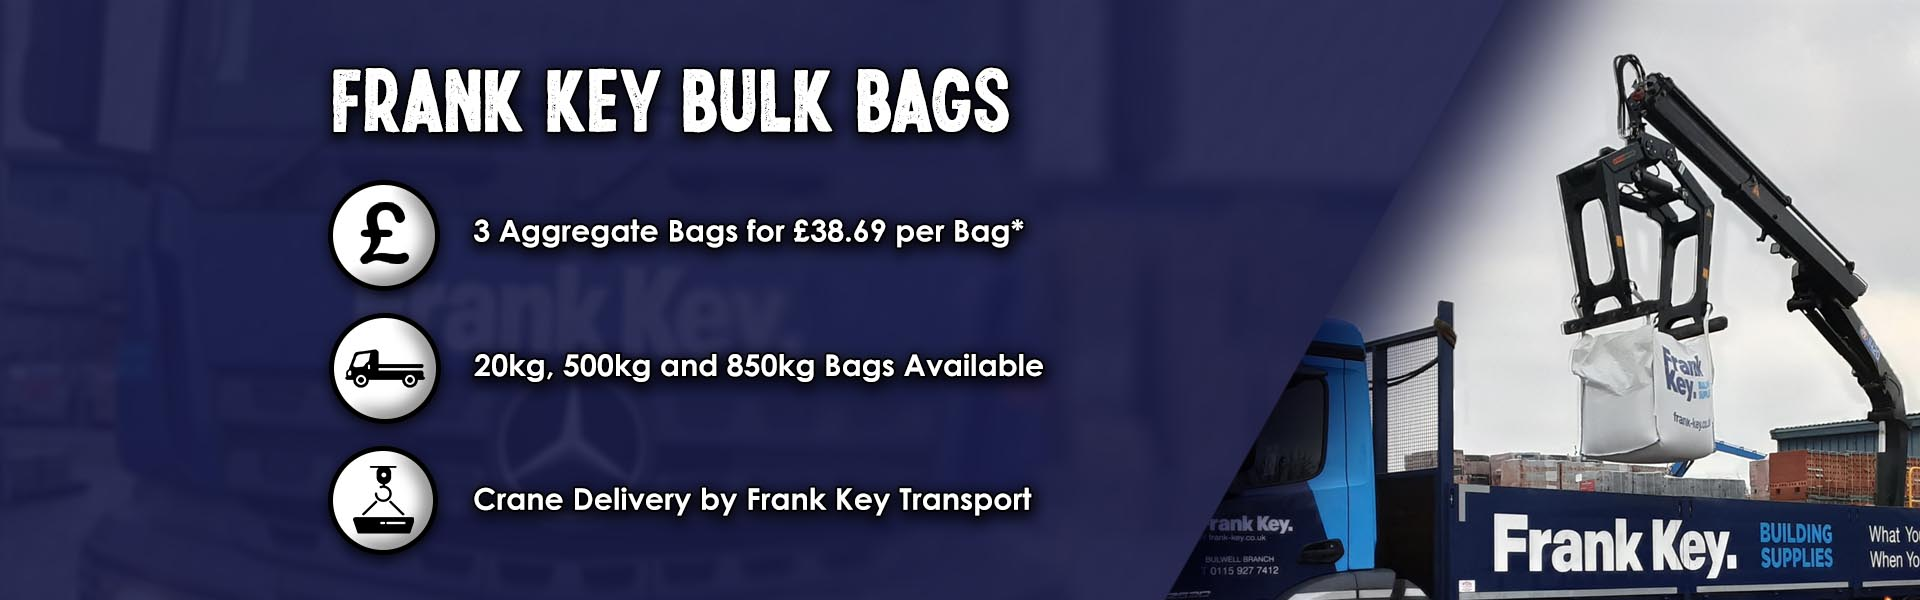 frank key bulk bags  working day delivery curbside crane delivery